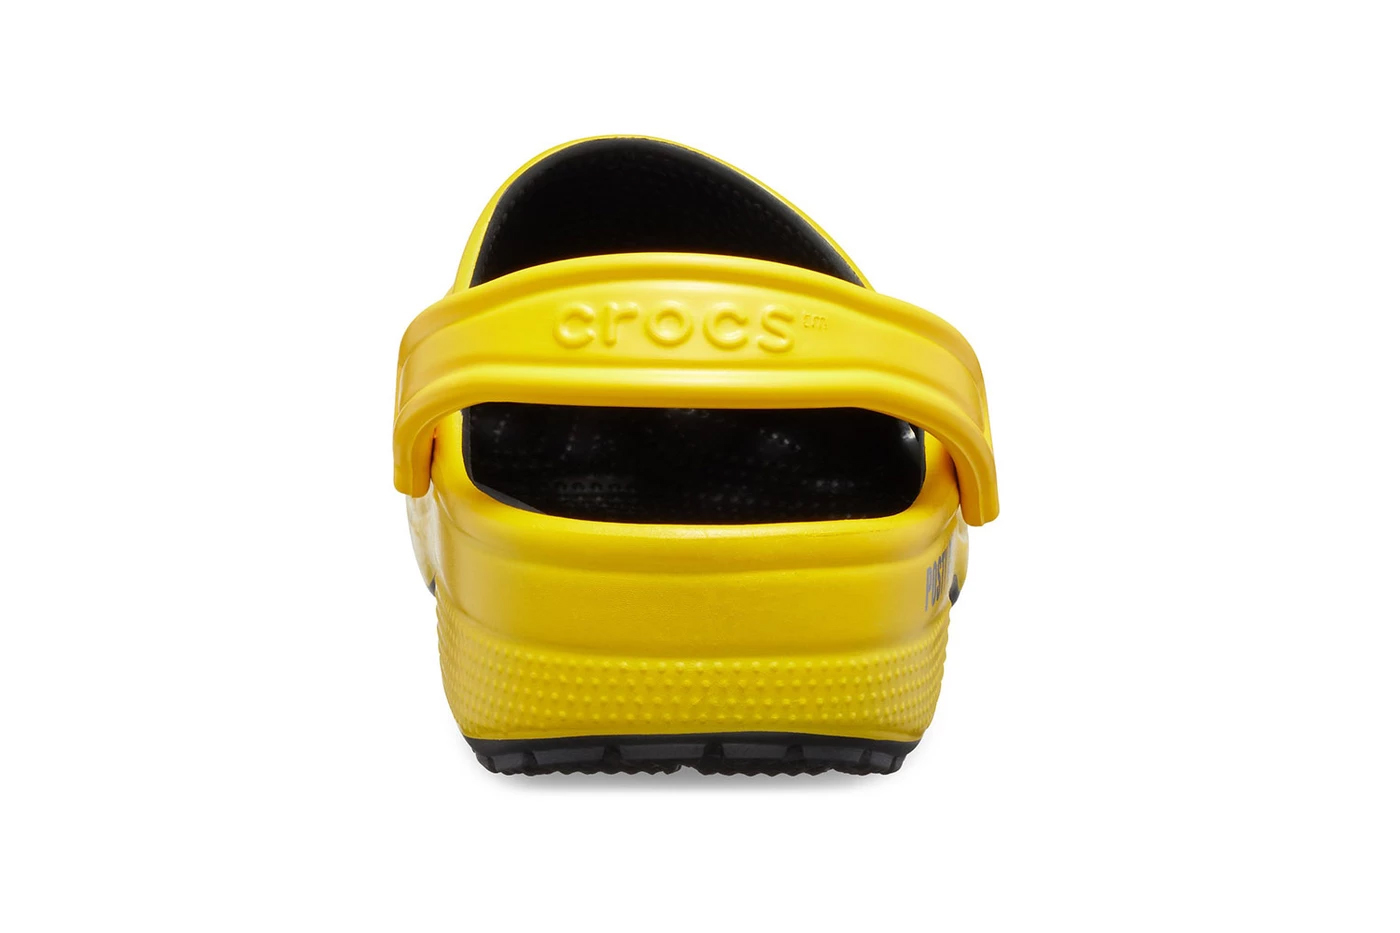 548c77e69 This new iteration of the Classic Clog features a yellow base — the color  has become synonymous with Post Malone s movement so far — which also  incorporates ...